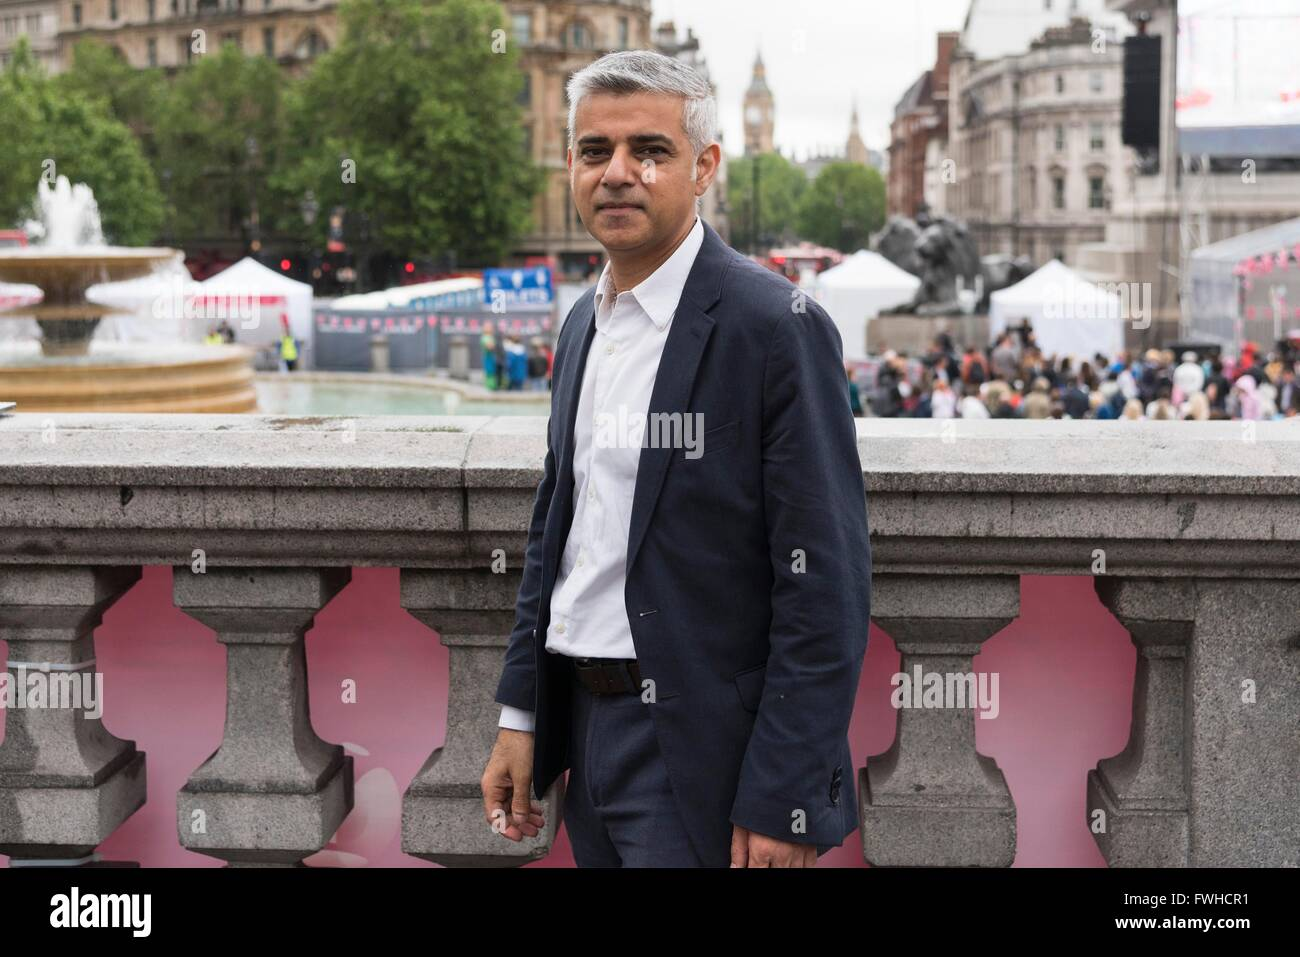 (160612) -- LONDON, June 12, 2016 (Xinhua) -- London Mayor Sadiq Khan poses for pictures as he participates in celebrations - Stock Image